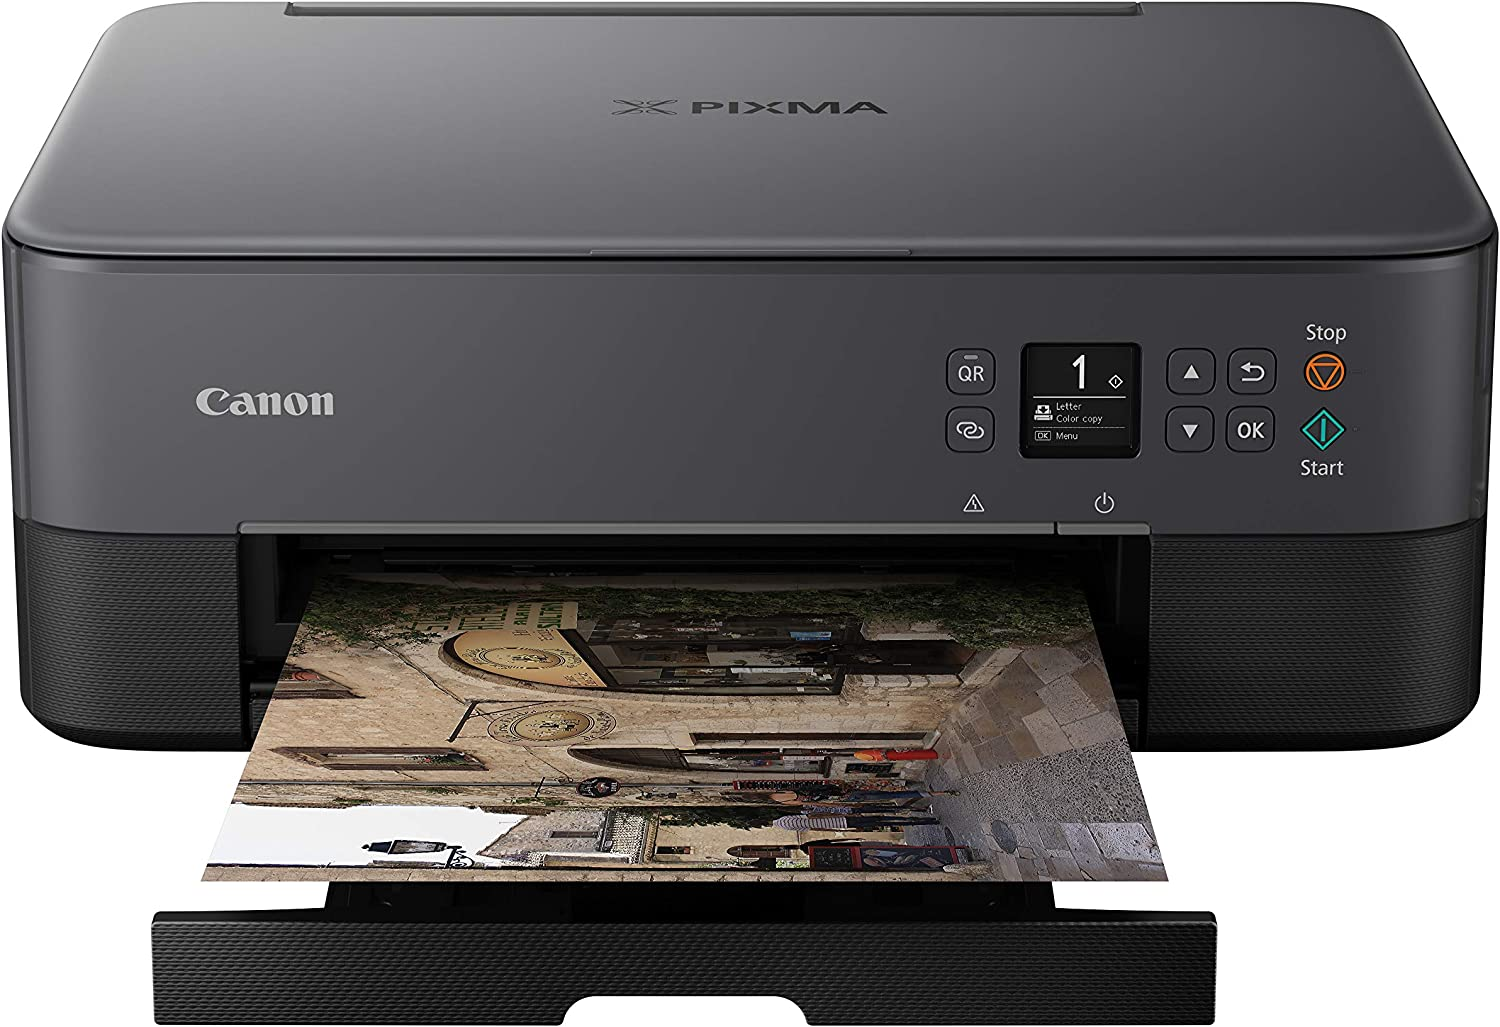 Canon TS5320 All In One Wireless Printer, Scanner, Copier with AirPrint